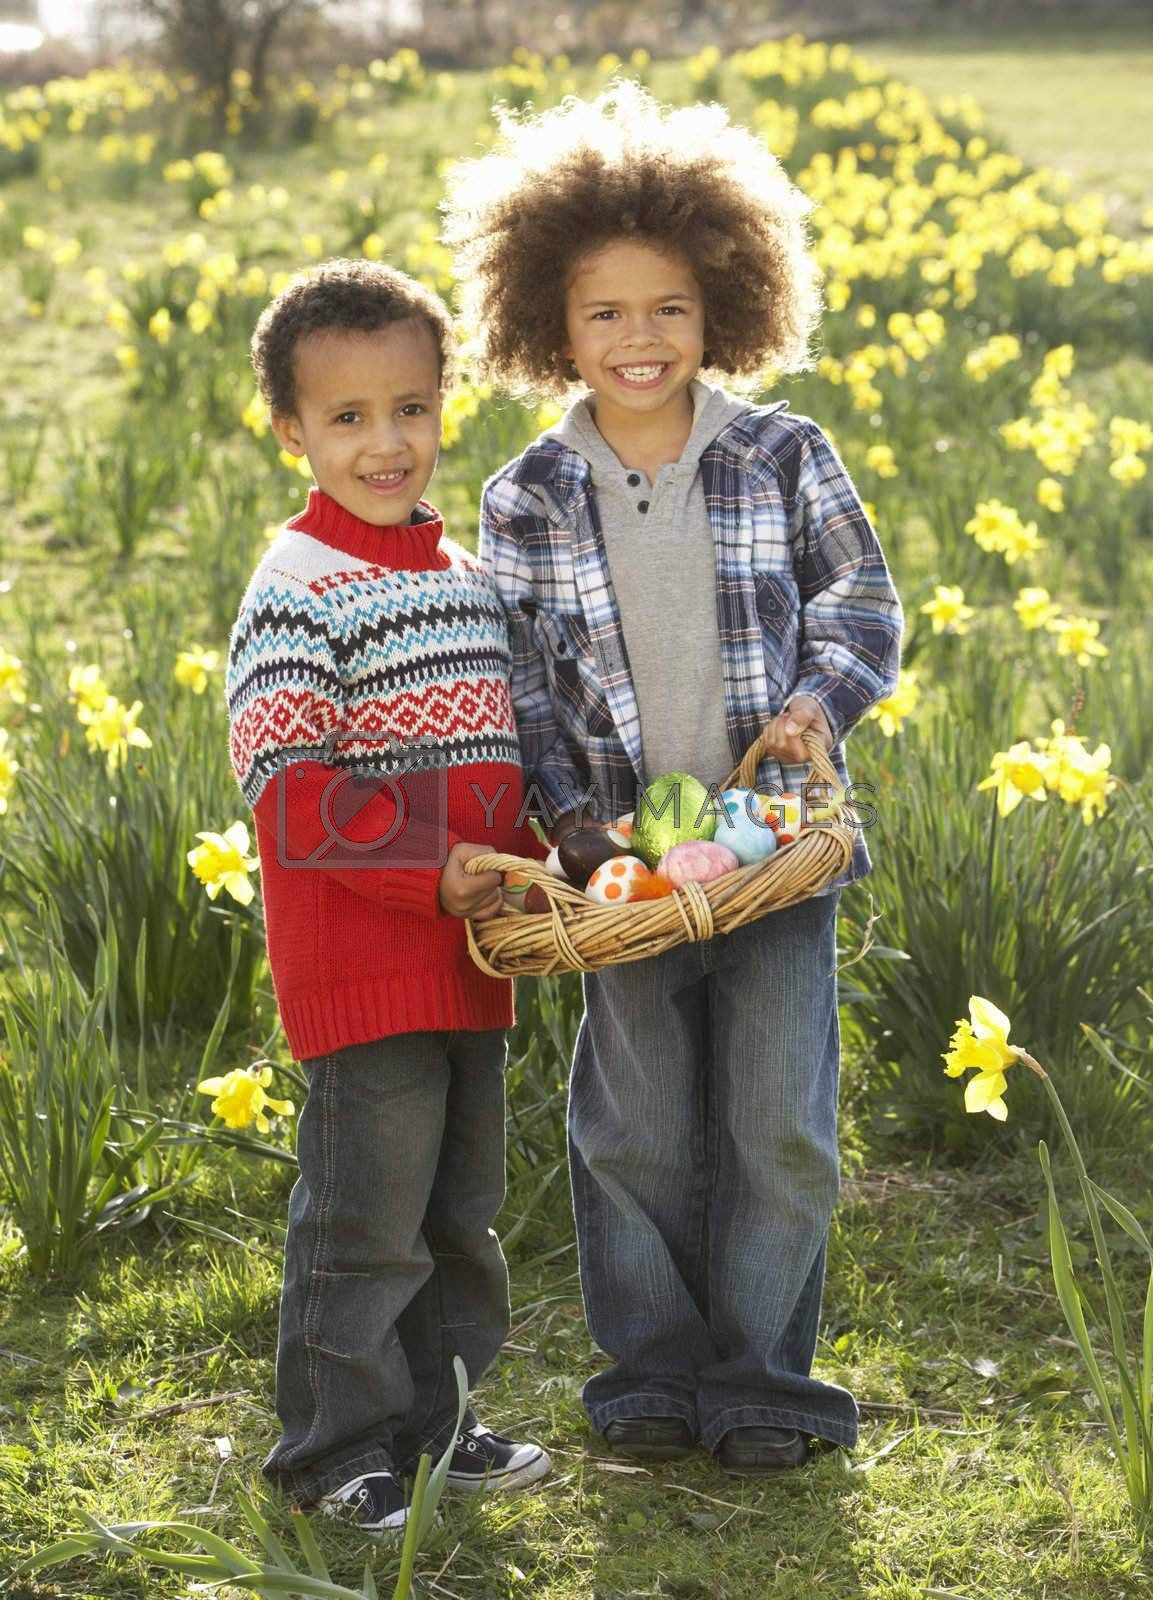 Two Boys Having Easter Egg Hunt In Daffodil Field by OMG Images